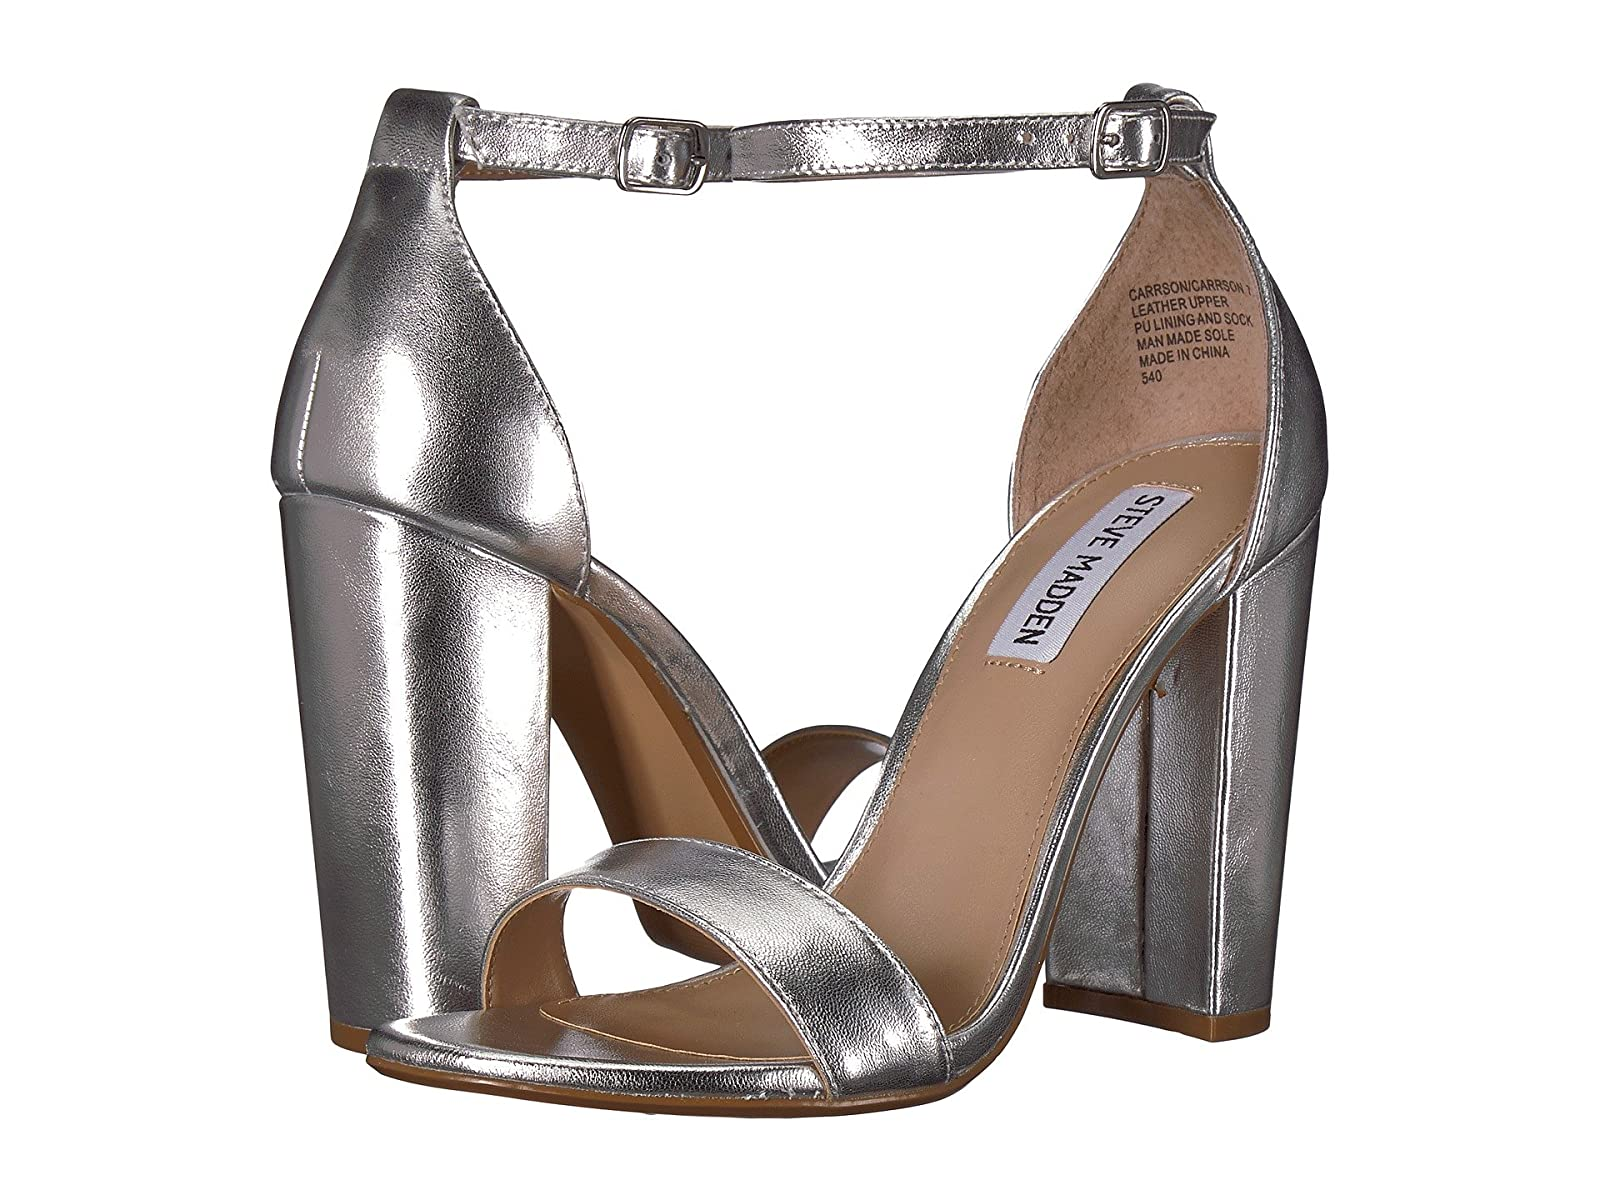 Steve Madden Carrson Heeled SandalCheap and distinctive eye-catching shoes